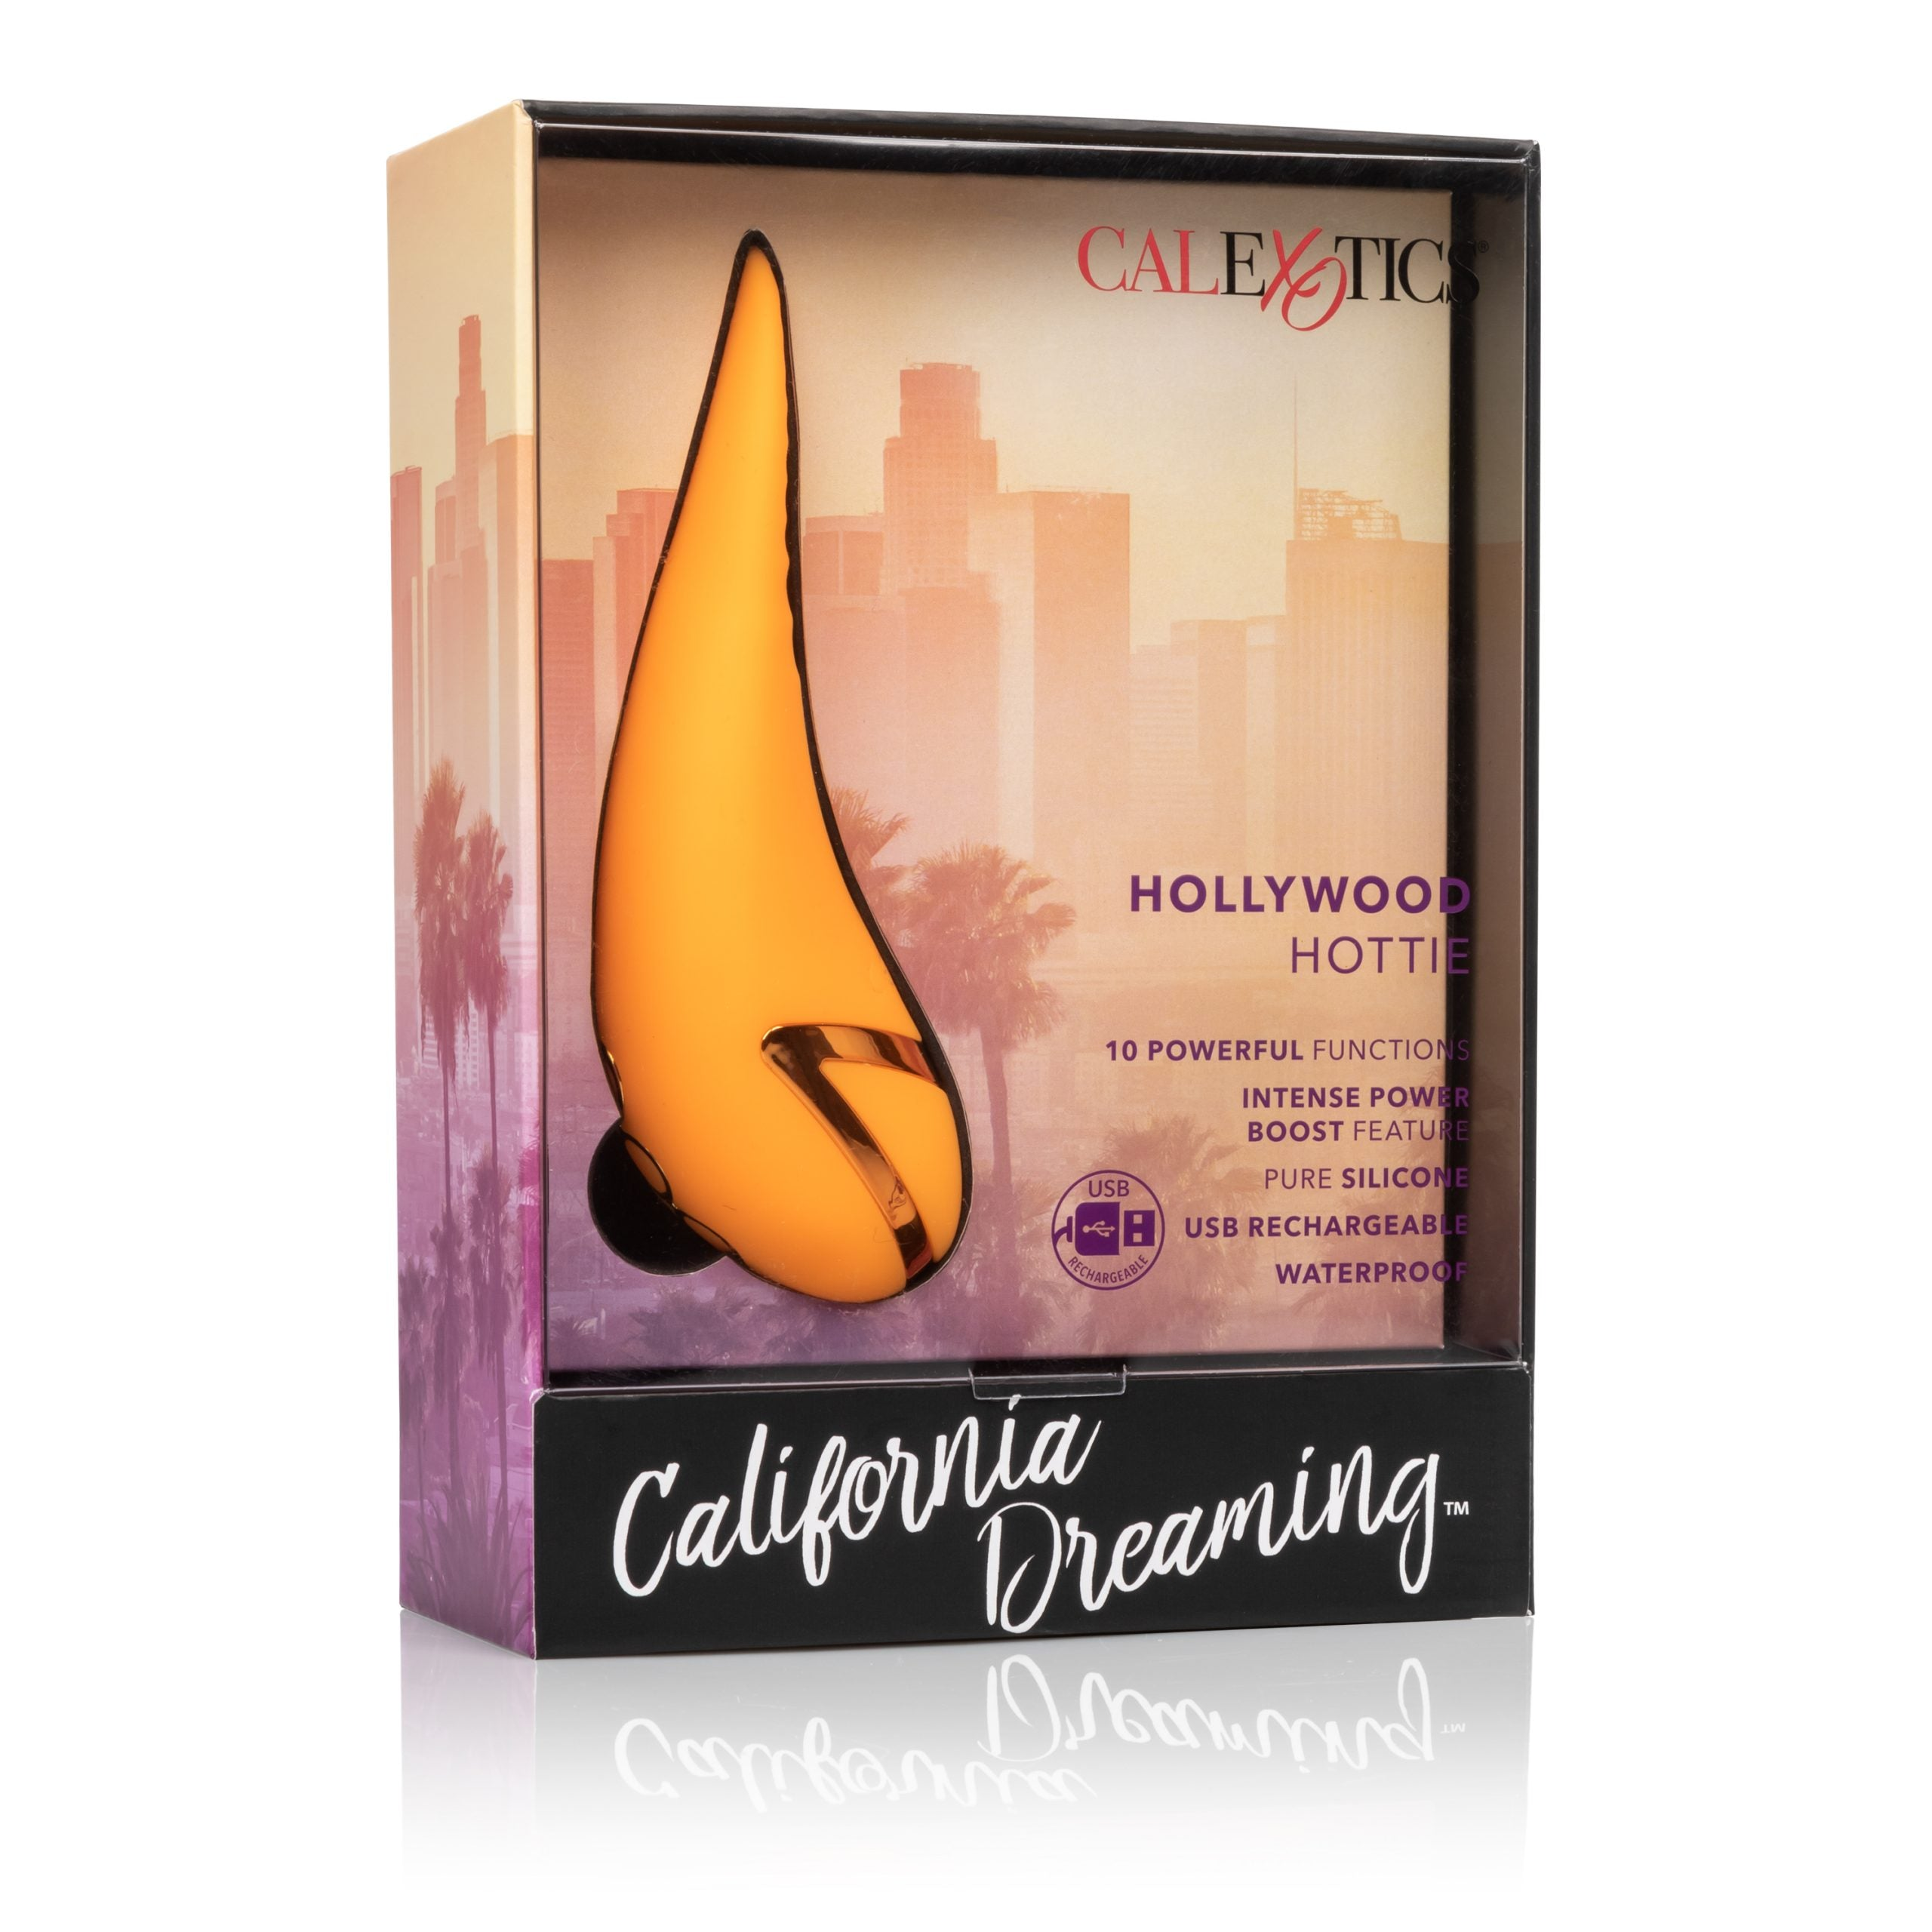 California Dreaming Hollywood Hottie - Sexy Nights Deals